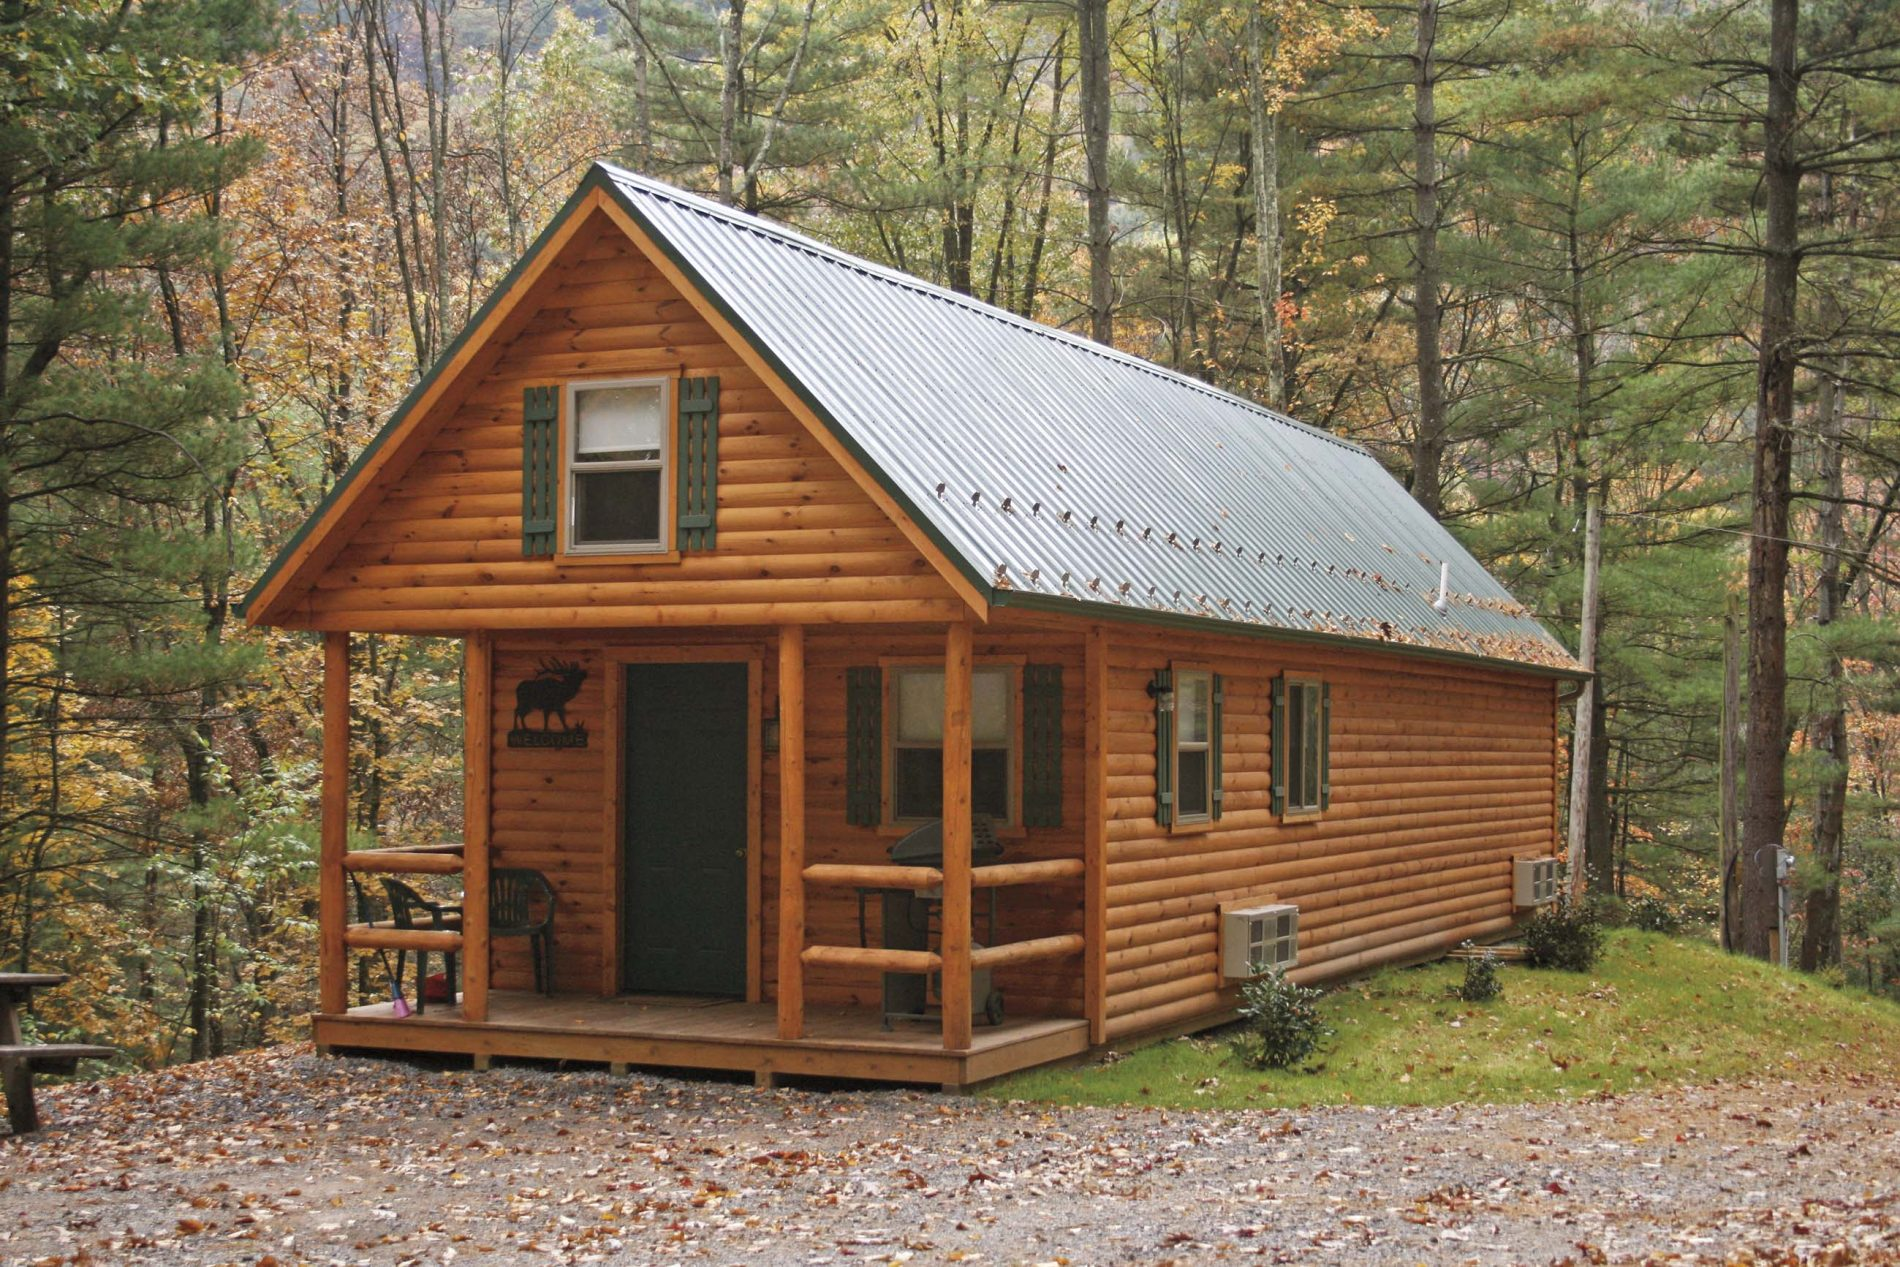 Tiny Log Home Designs: Adirondack Log Homes